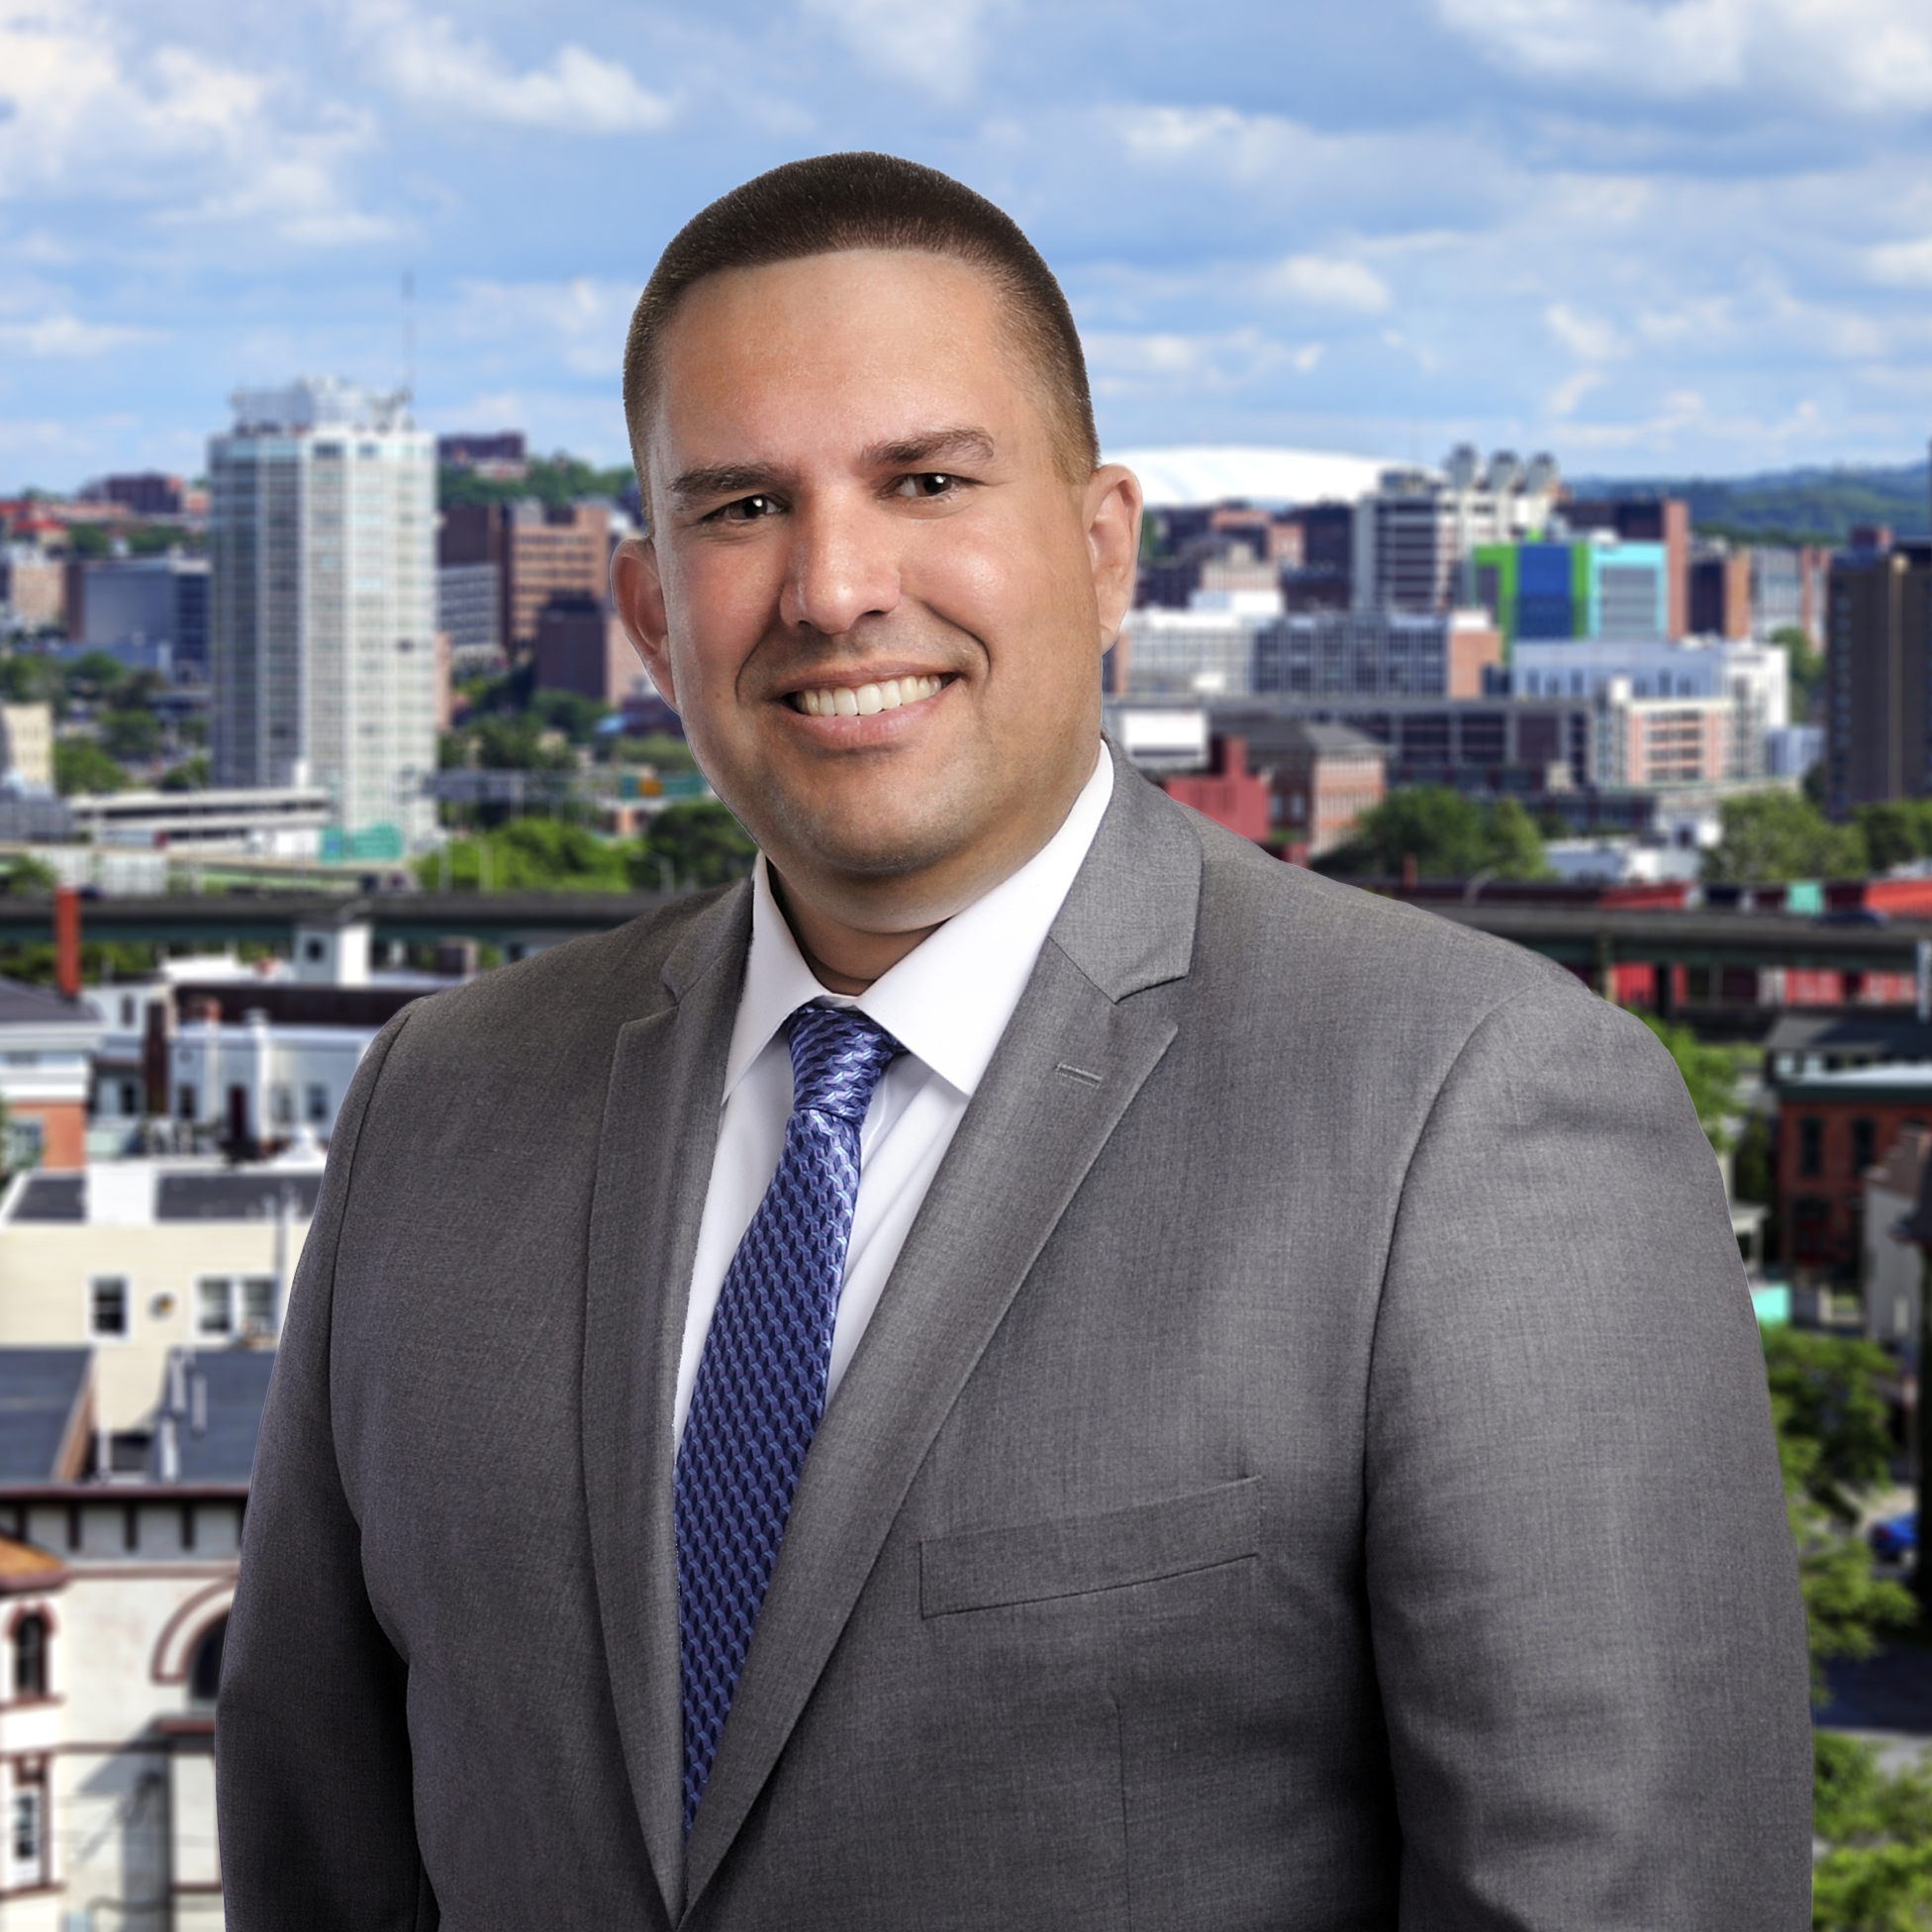 Head shot of Shawn Layo, tax manager at Dannible & McKee